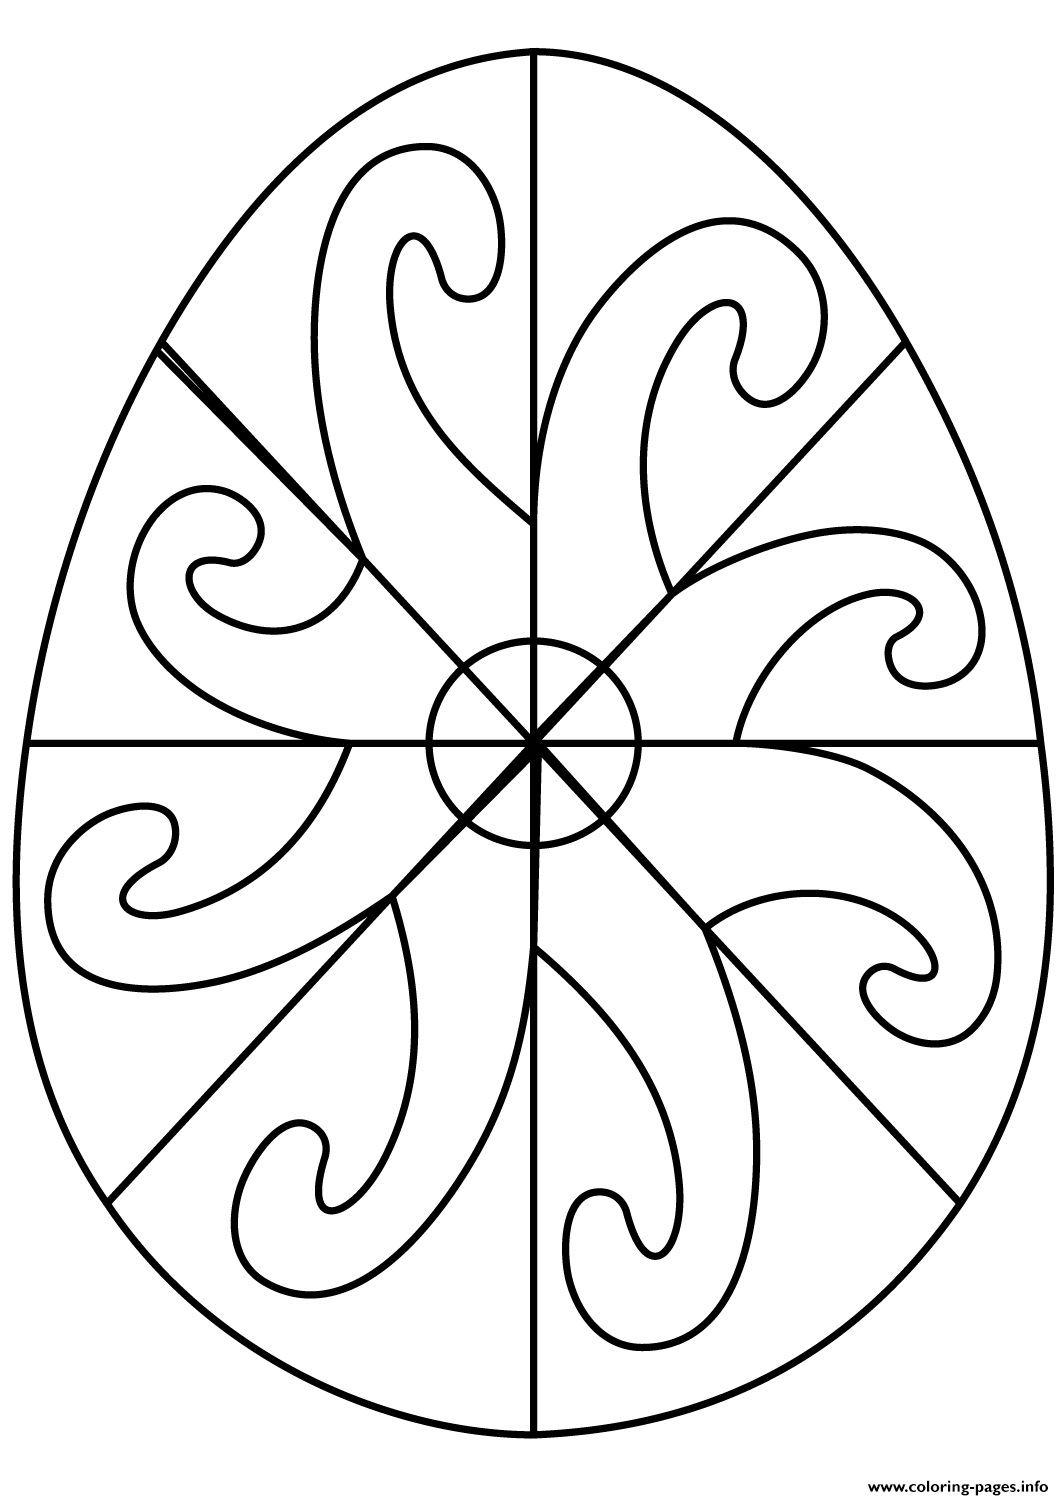 Easter Egg with Spiral Pattern Coloring Pages Printable Gallery Of Easter Coloring Printable Easter Coloring Pages Coloring Gallery